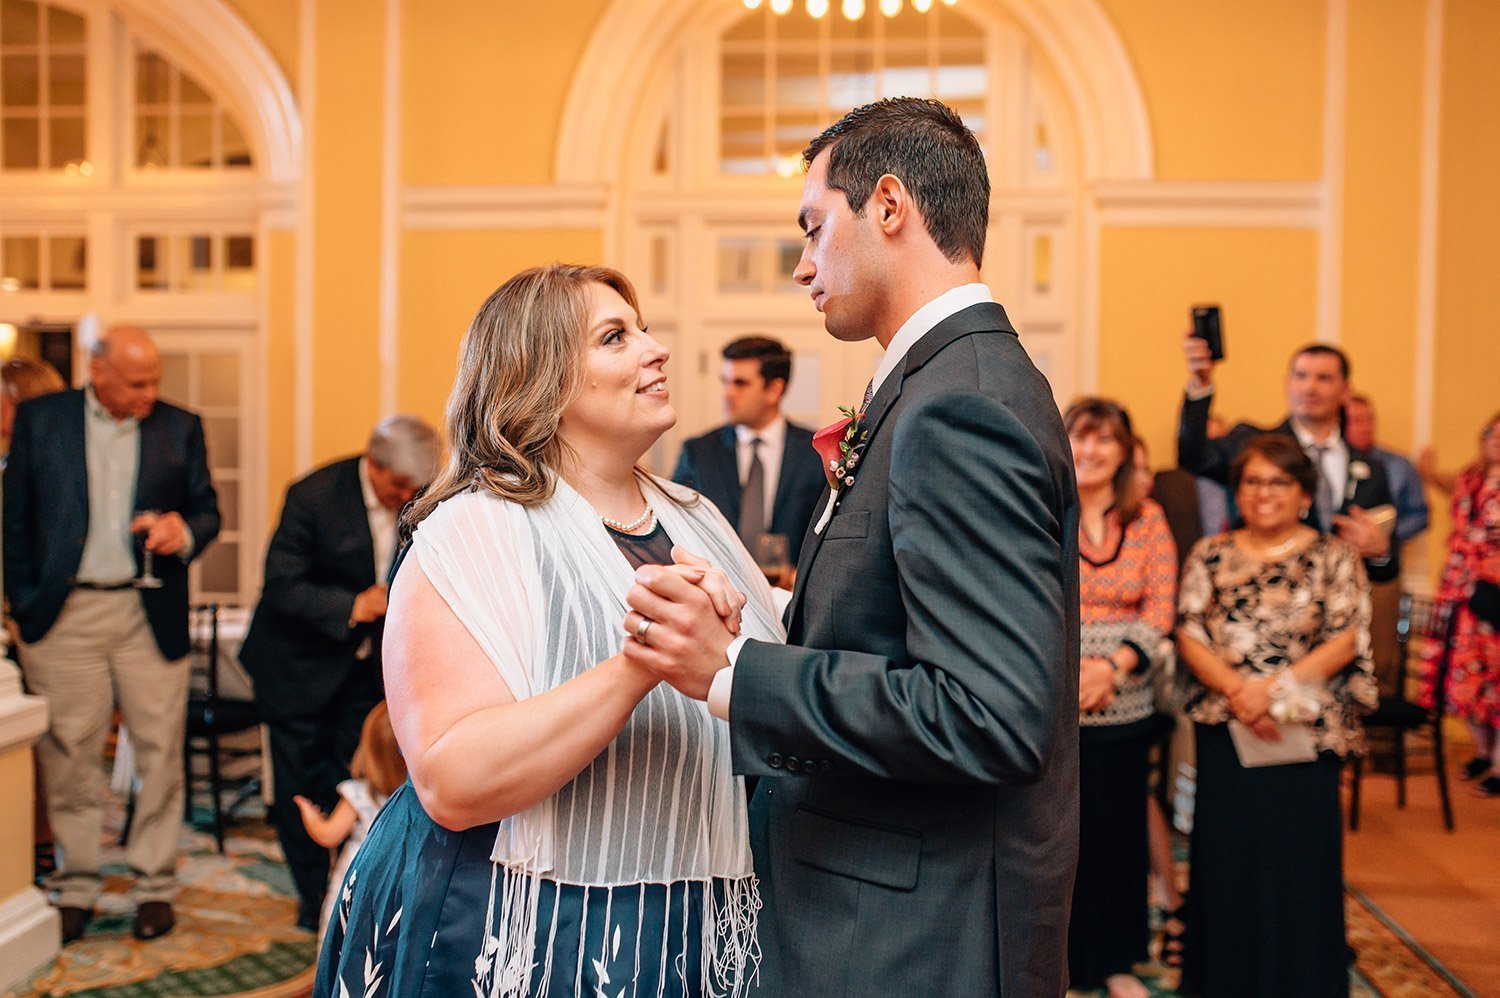 mother and son dance at wedding reception at Hotel Galvez